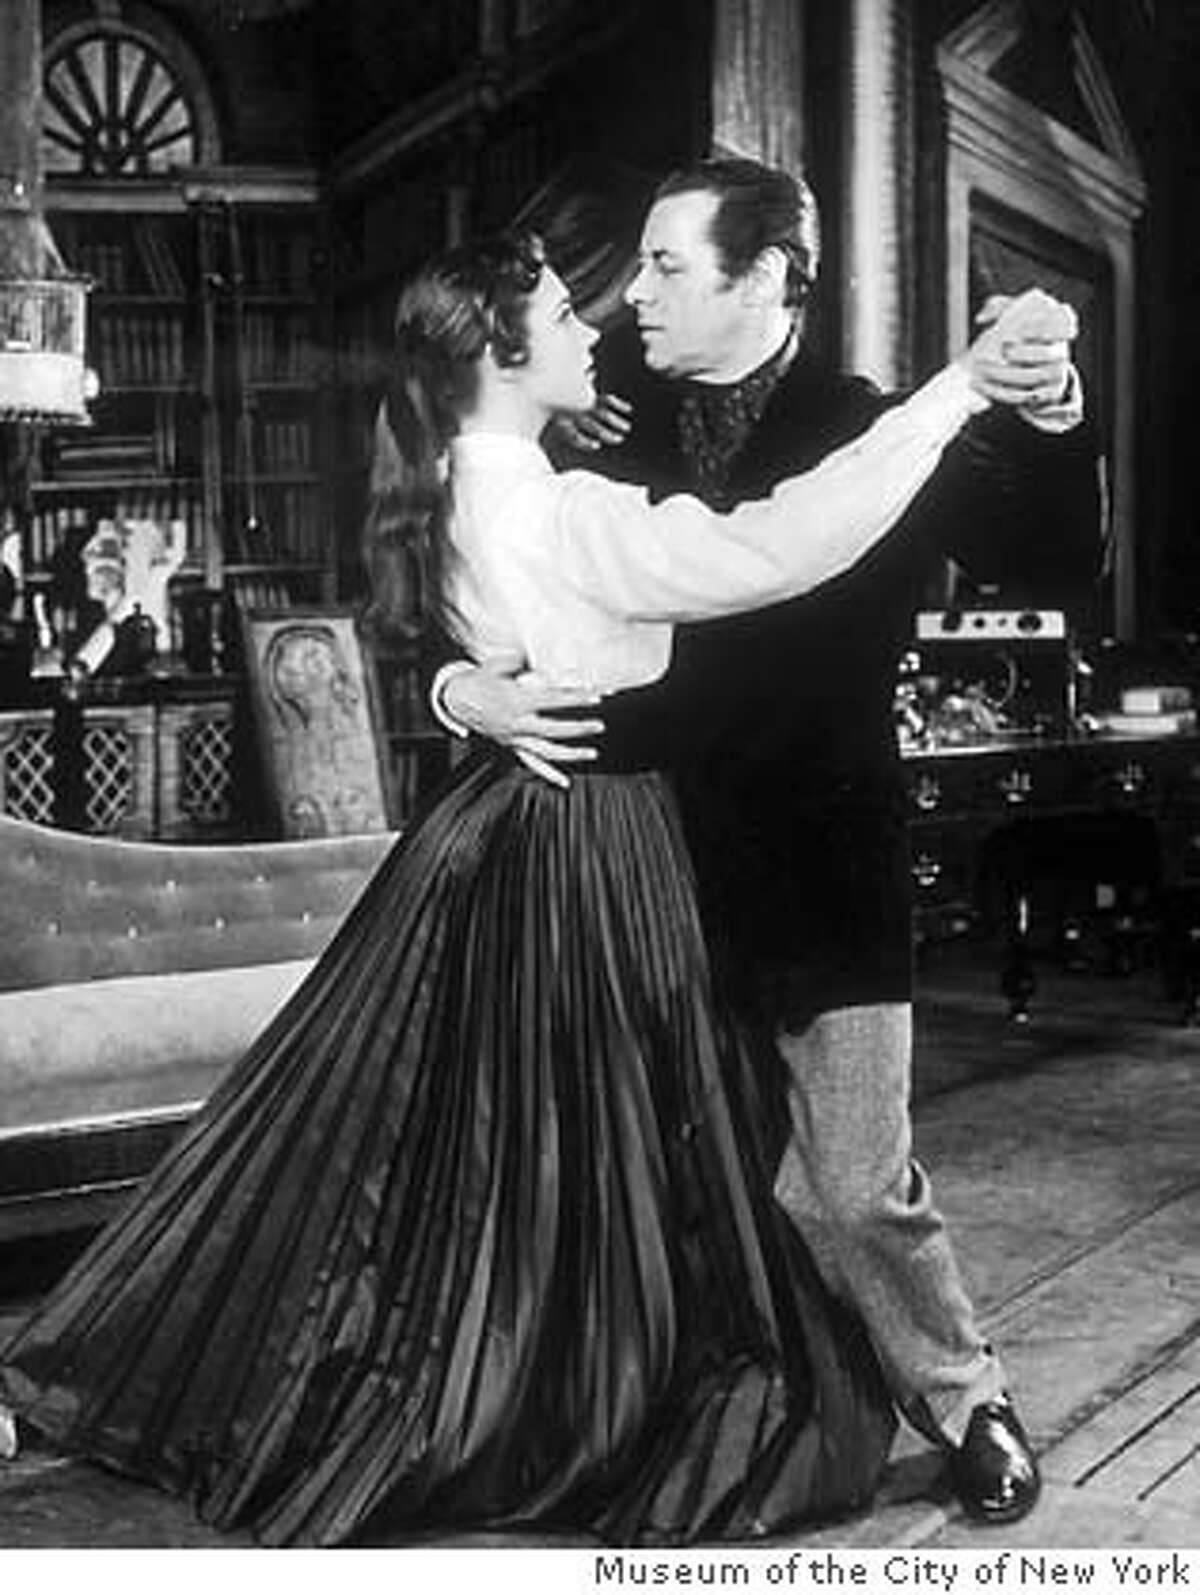 circa 1955: Full-length image of British actors Rex Harrison and Julie Andrews dancing together in a scene from the Broadway musical, 'My Fair Lady,' Mark Hellinger Theatre, New York City. (Photo by Museum of the City of New York)Ran on: 03-12-2006